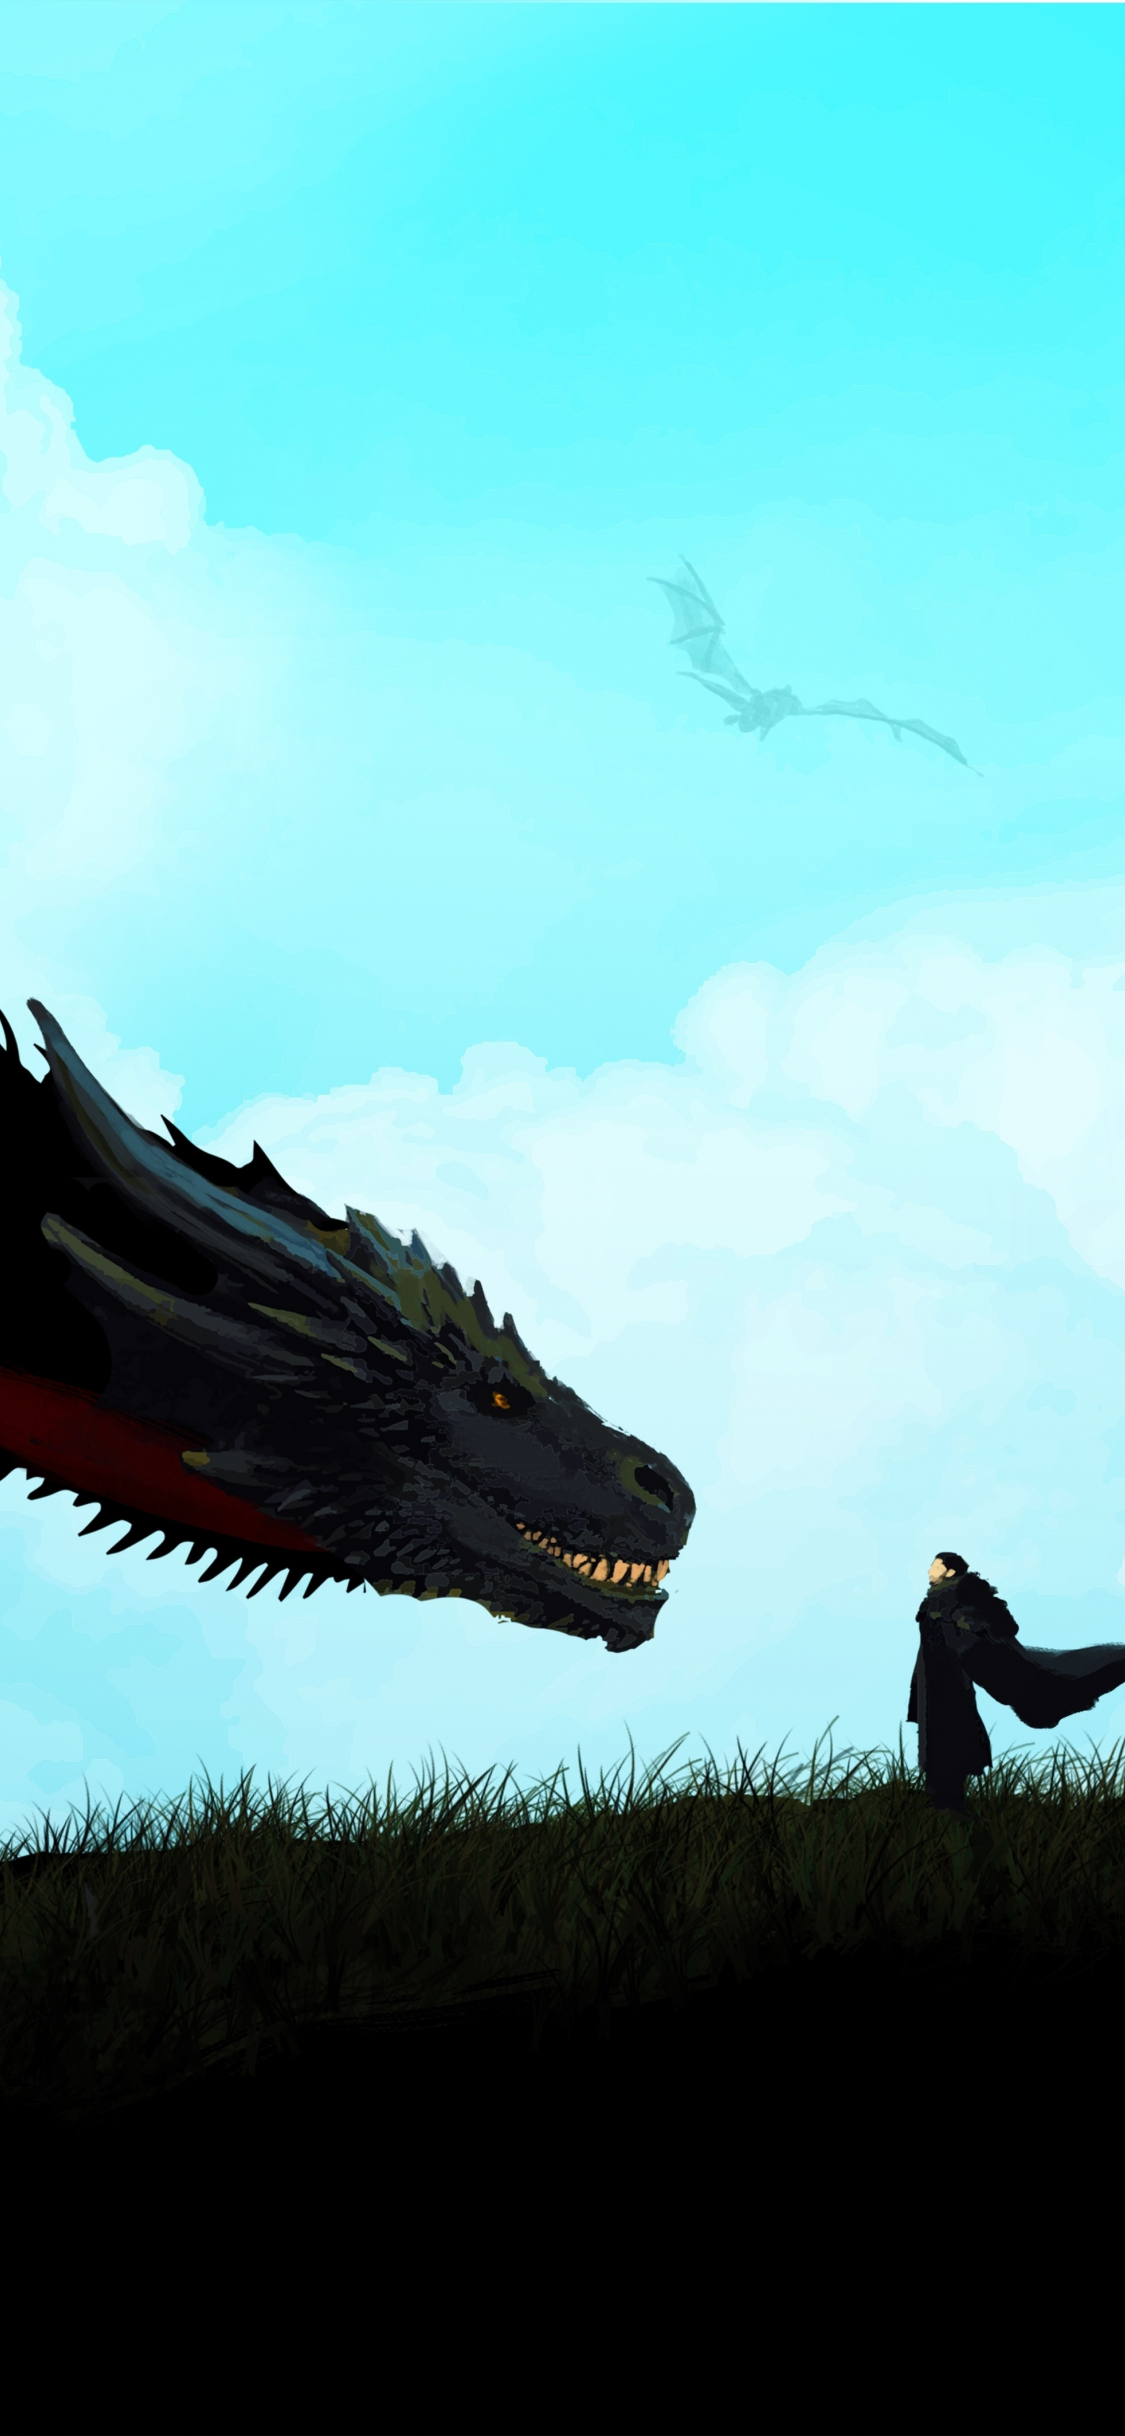 Download 1125x2436 Wallpaper Jon Snow And Dragon Game Of Thrones